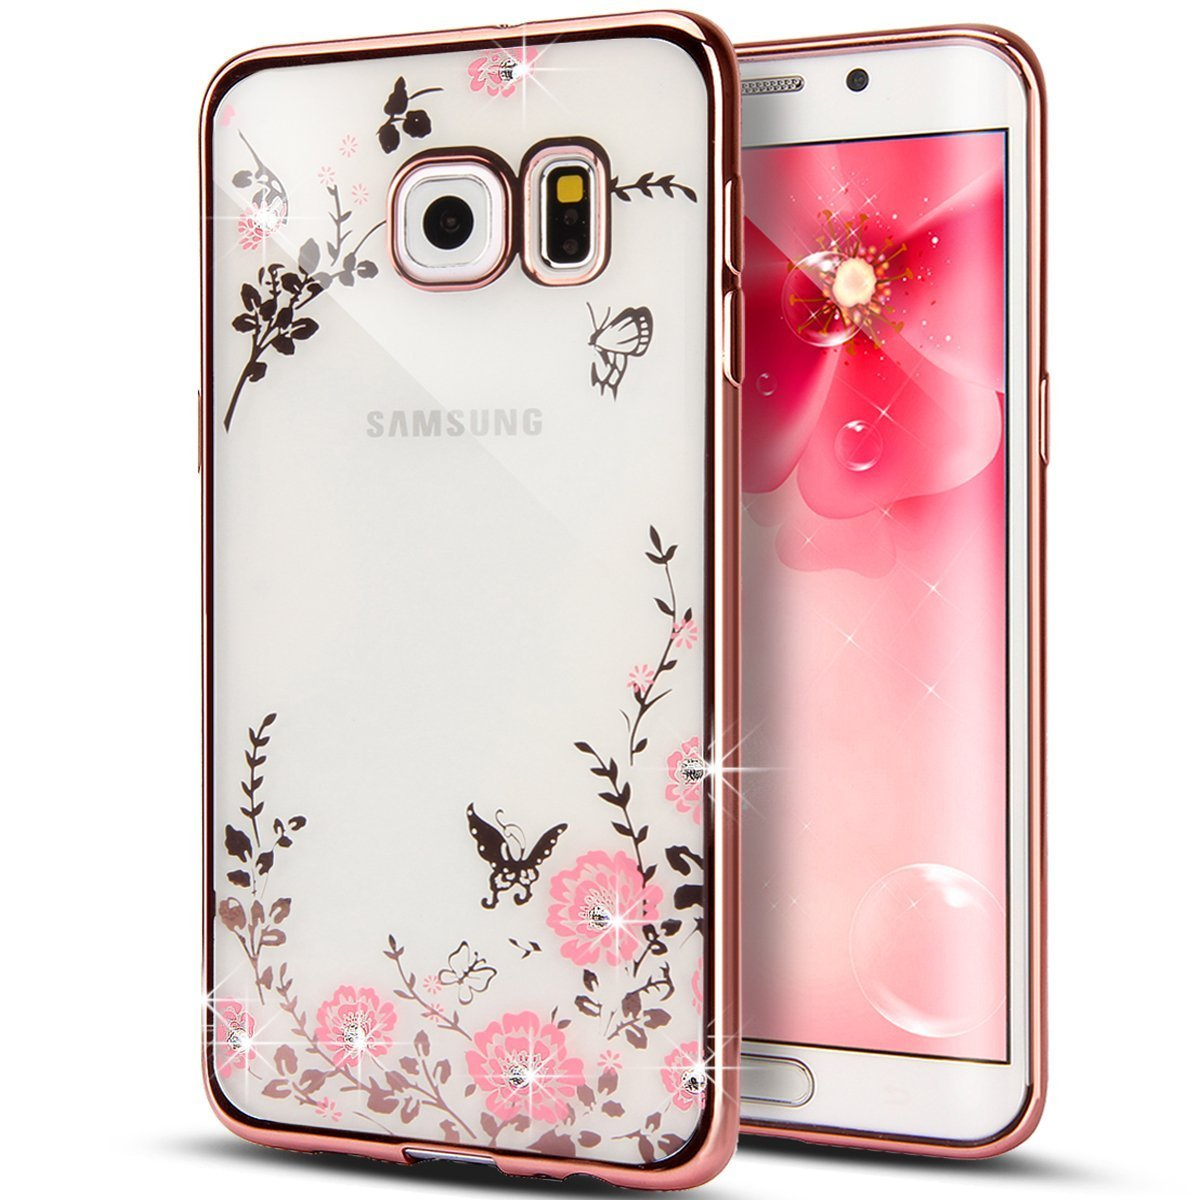 (Secret Garden) HAOTP Beauty Luxury Butterfly Floral Flower Diamonds Shiny Plating Frame Plating Bumper Soft Flexible TPU Transparent Skin Case for Samsung Galaxy NOTE 4--Swarovski (Rose Gold/Pink)